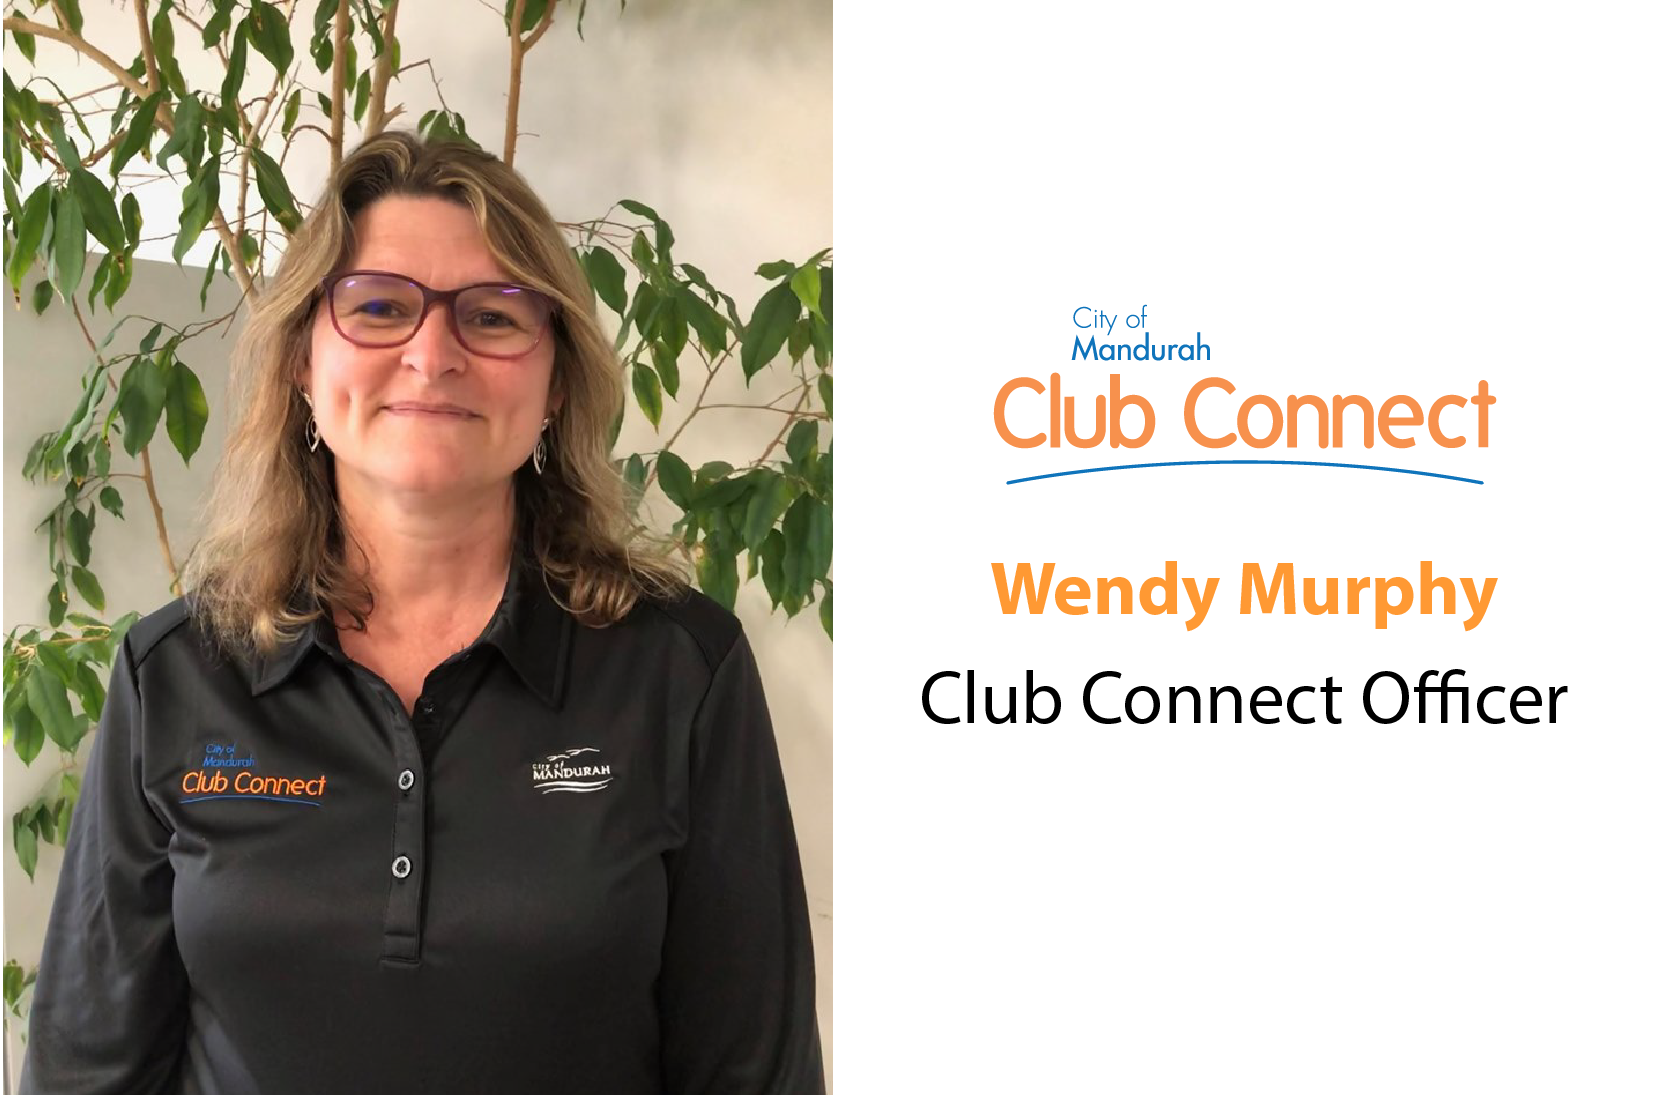 Wendy Murphy, Club Connect Officer